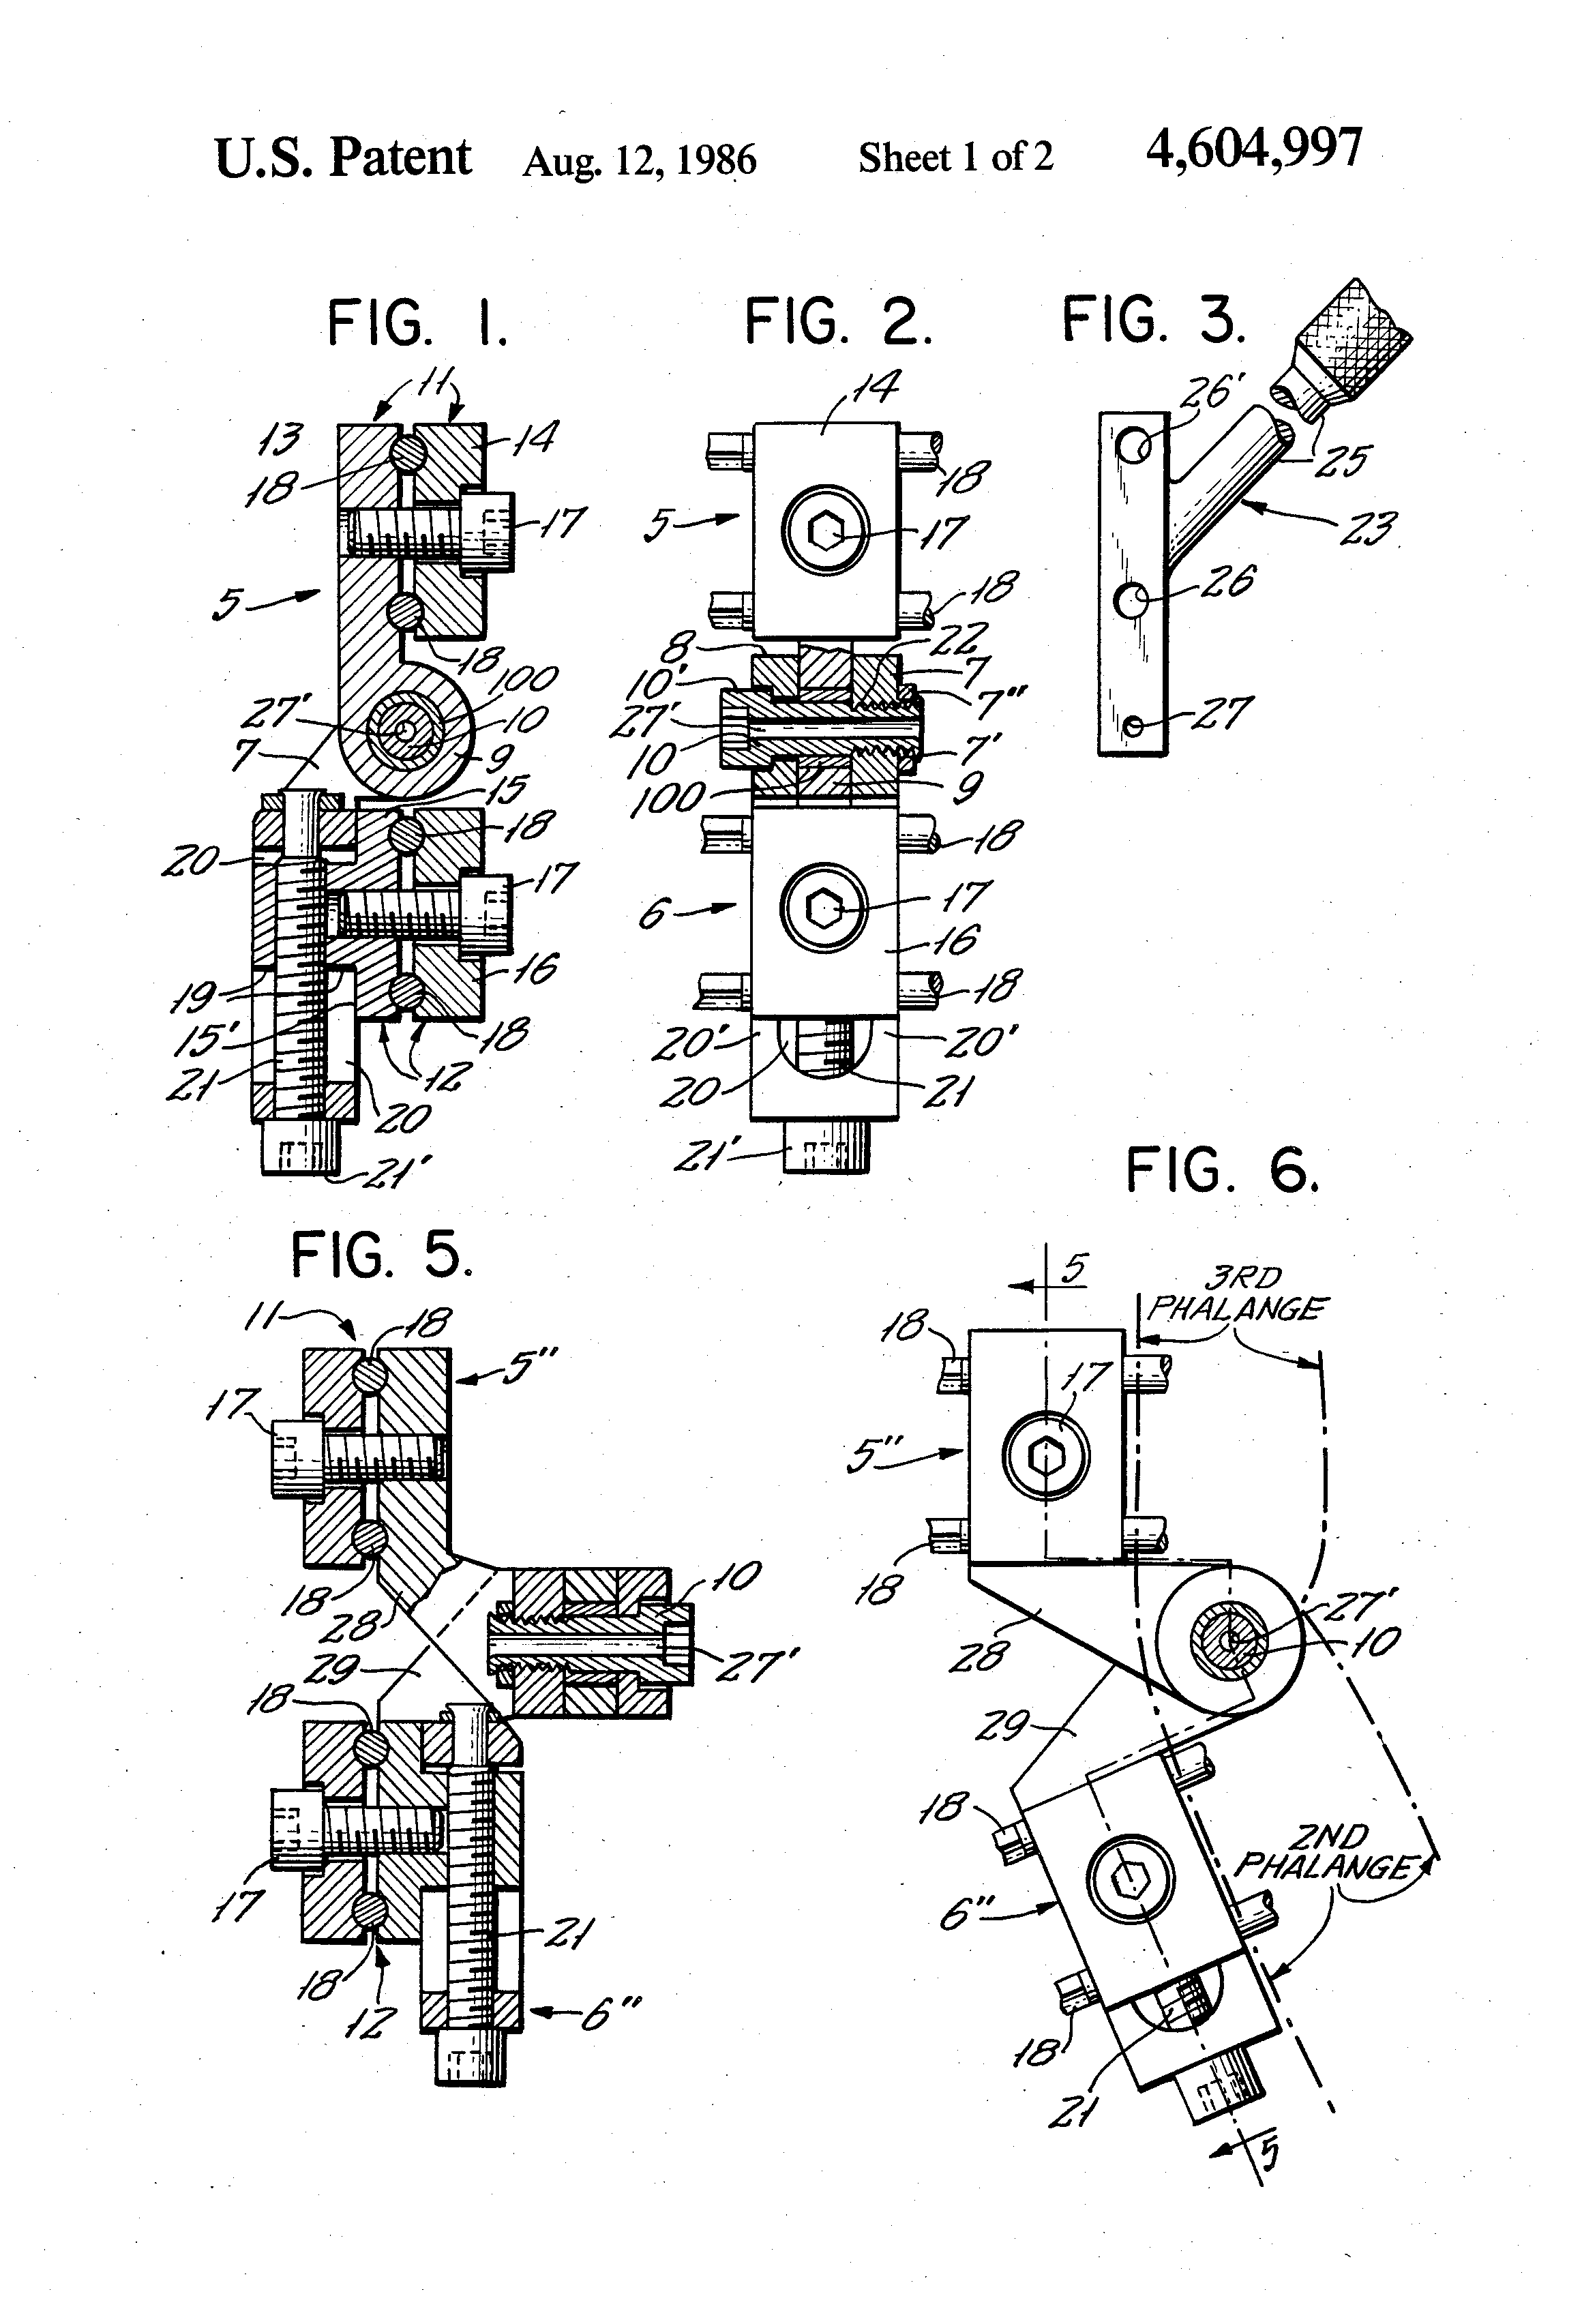 Orthopedic External Fixation Devices http://www.google.com/patents